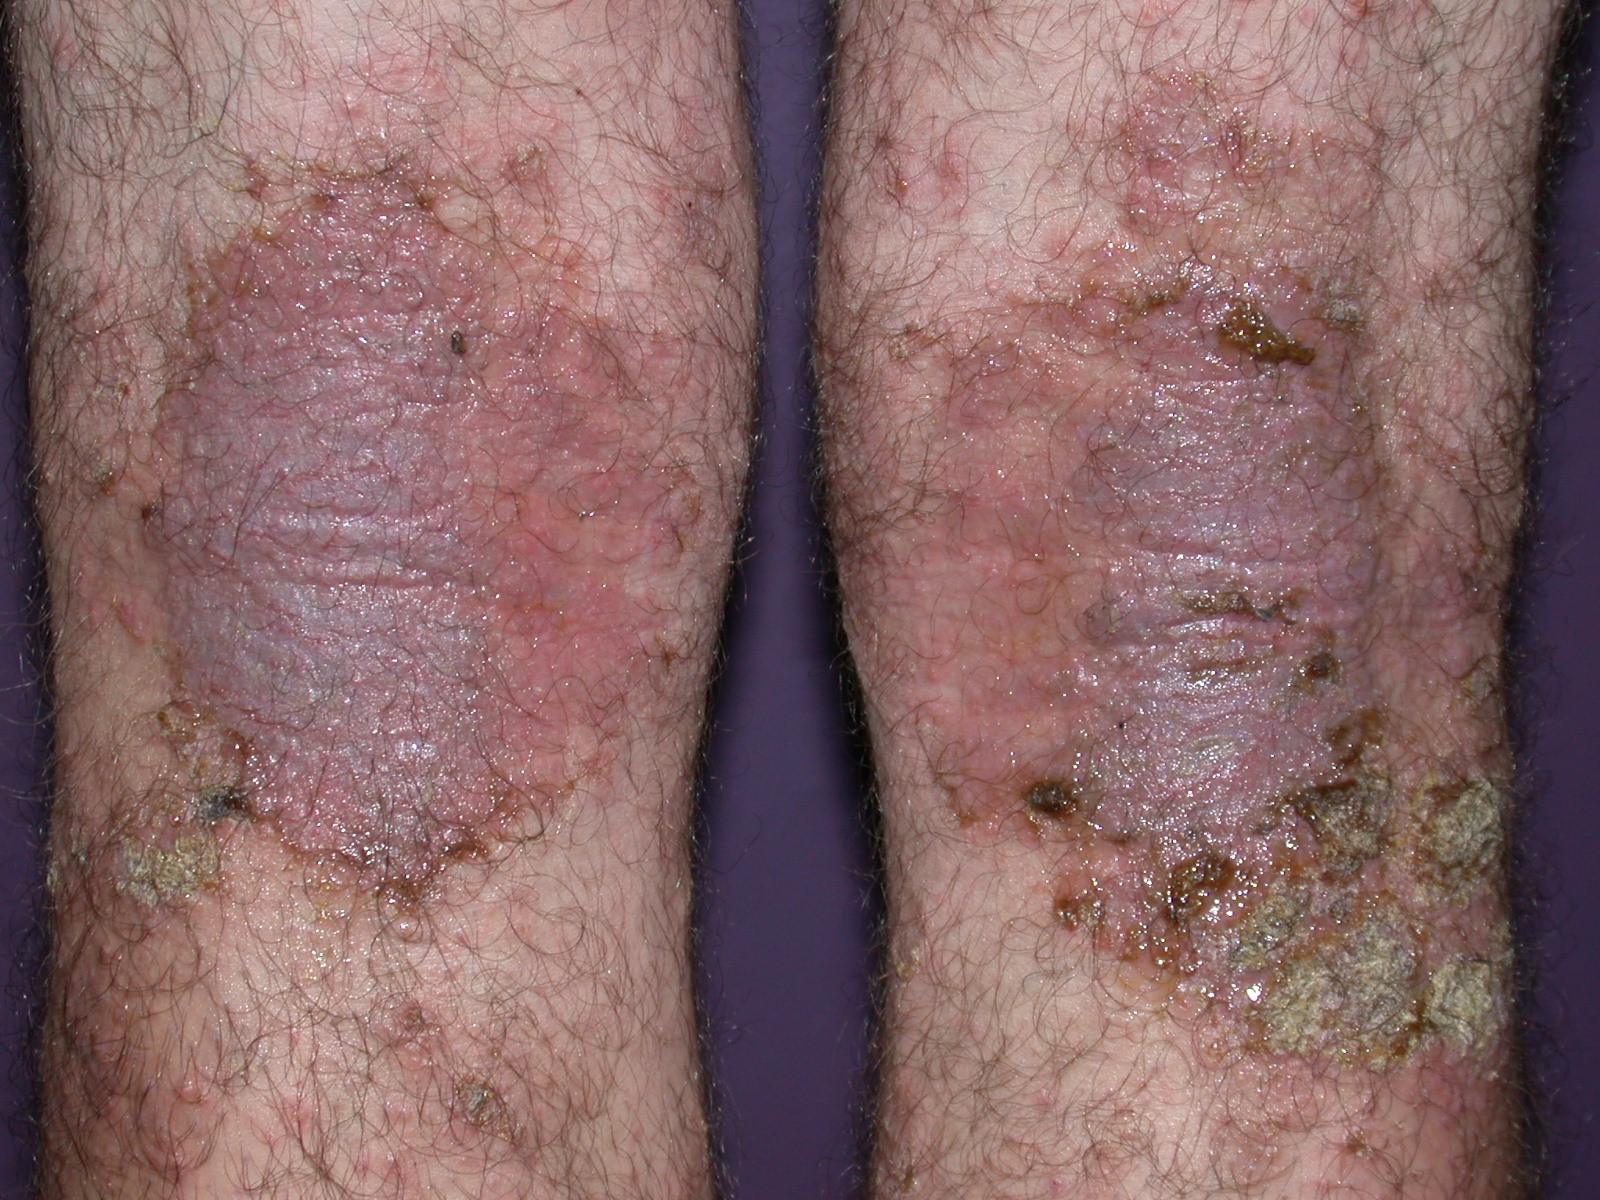 Image of Staphylococcal infection in atopic dermatitis from DermNetNZ